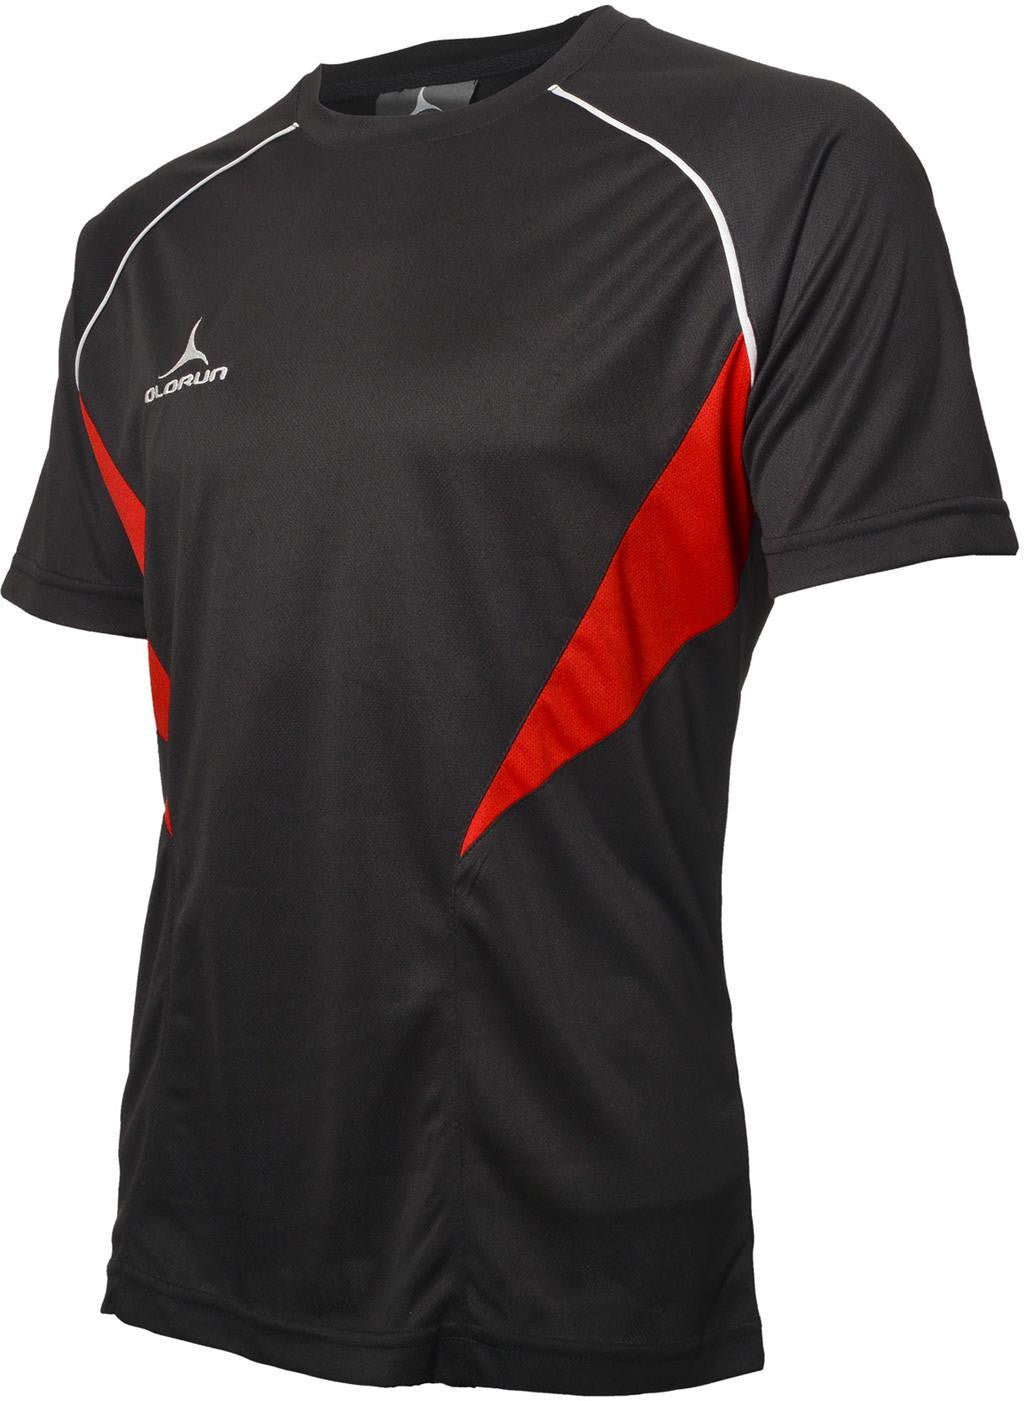 Olorun Flux T Shirt Black Red White (Fast Delivery) d87879fea